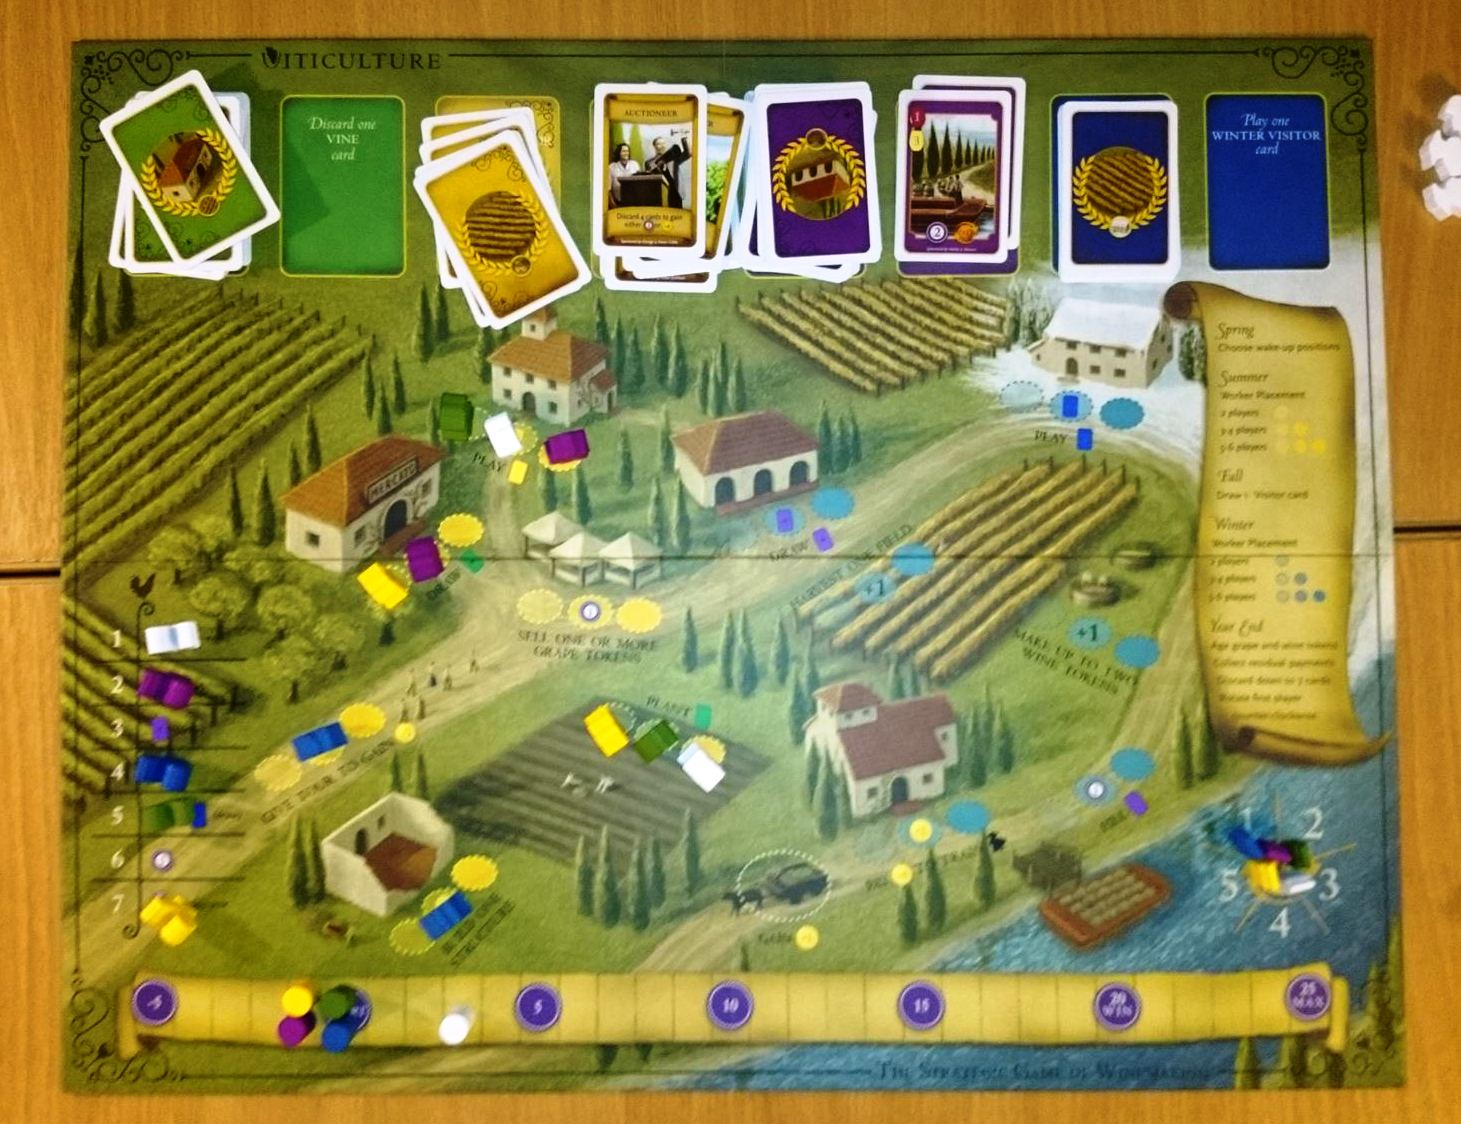 """The Viticulture main board, mid-game. The """"Summer"""" side is on the left and """"Winter"""" on the right - we're in Summer right now, and players have been planting vines, building structure, using their Summer visitors, and various other actions.  You can also see the card stacks at the top, (L to R: Vines, Summer visitors, Wine orders, Winter visitors)."""